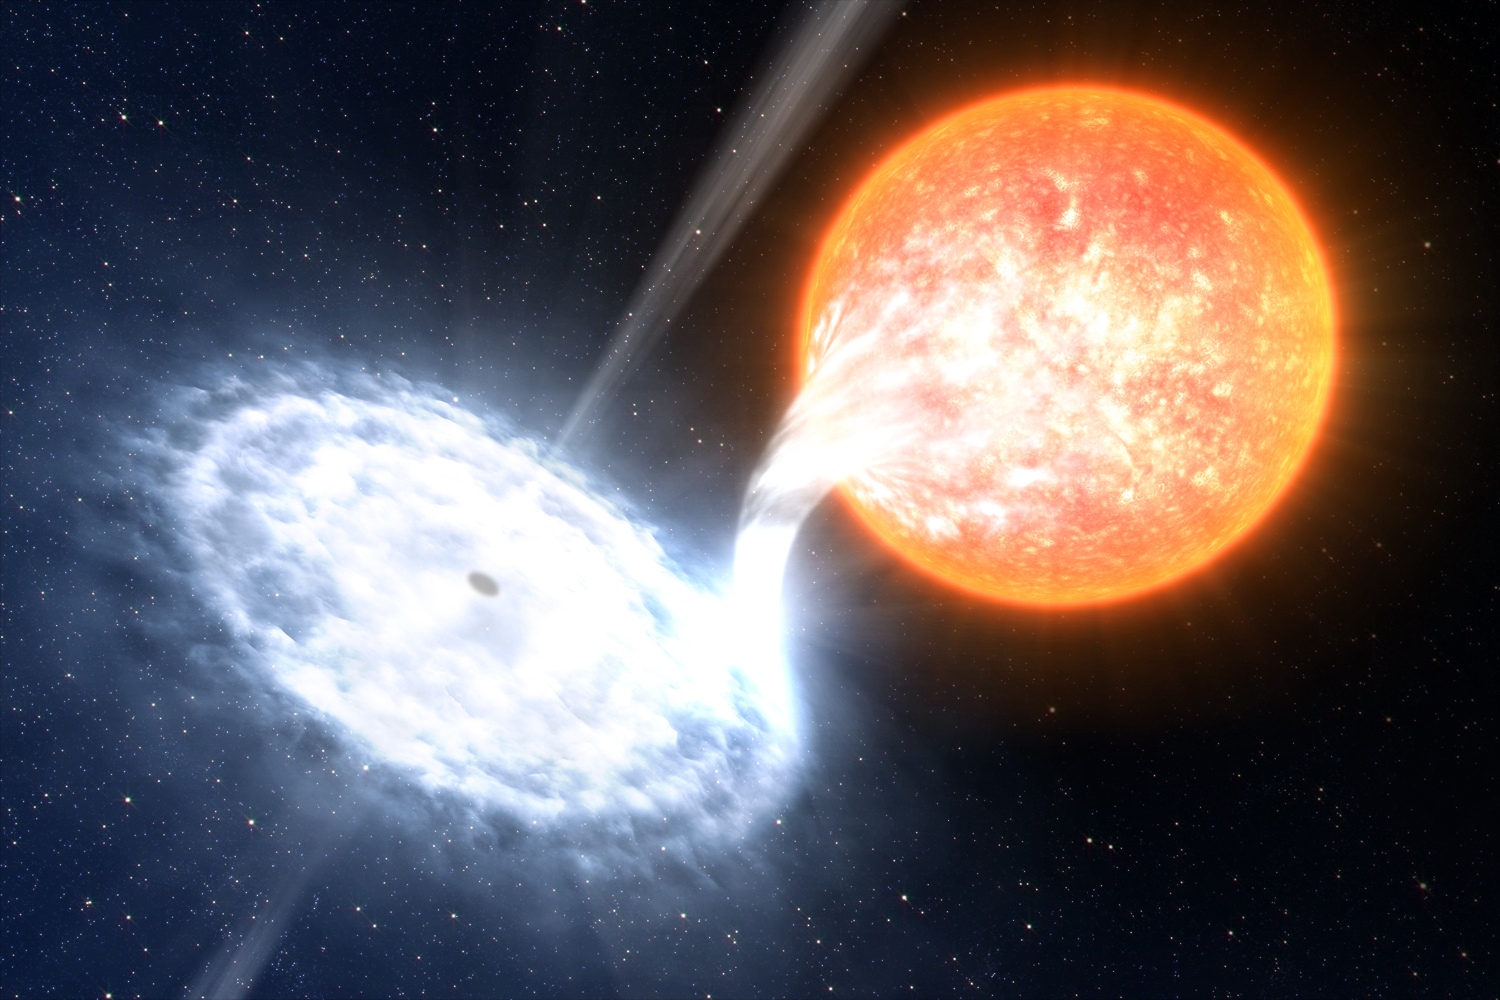 GX 339-4, illustrated here, is among the most dynamic binaries in the sky, with four major outbursts in the past seven years. In the system, an evolved star no more massive than the sun orbits a black hole estimated at 10 solar masses.